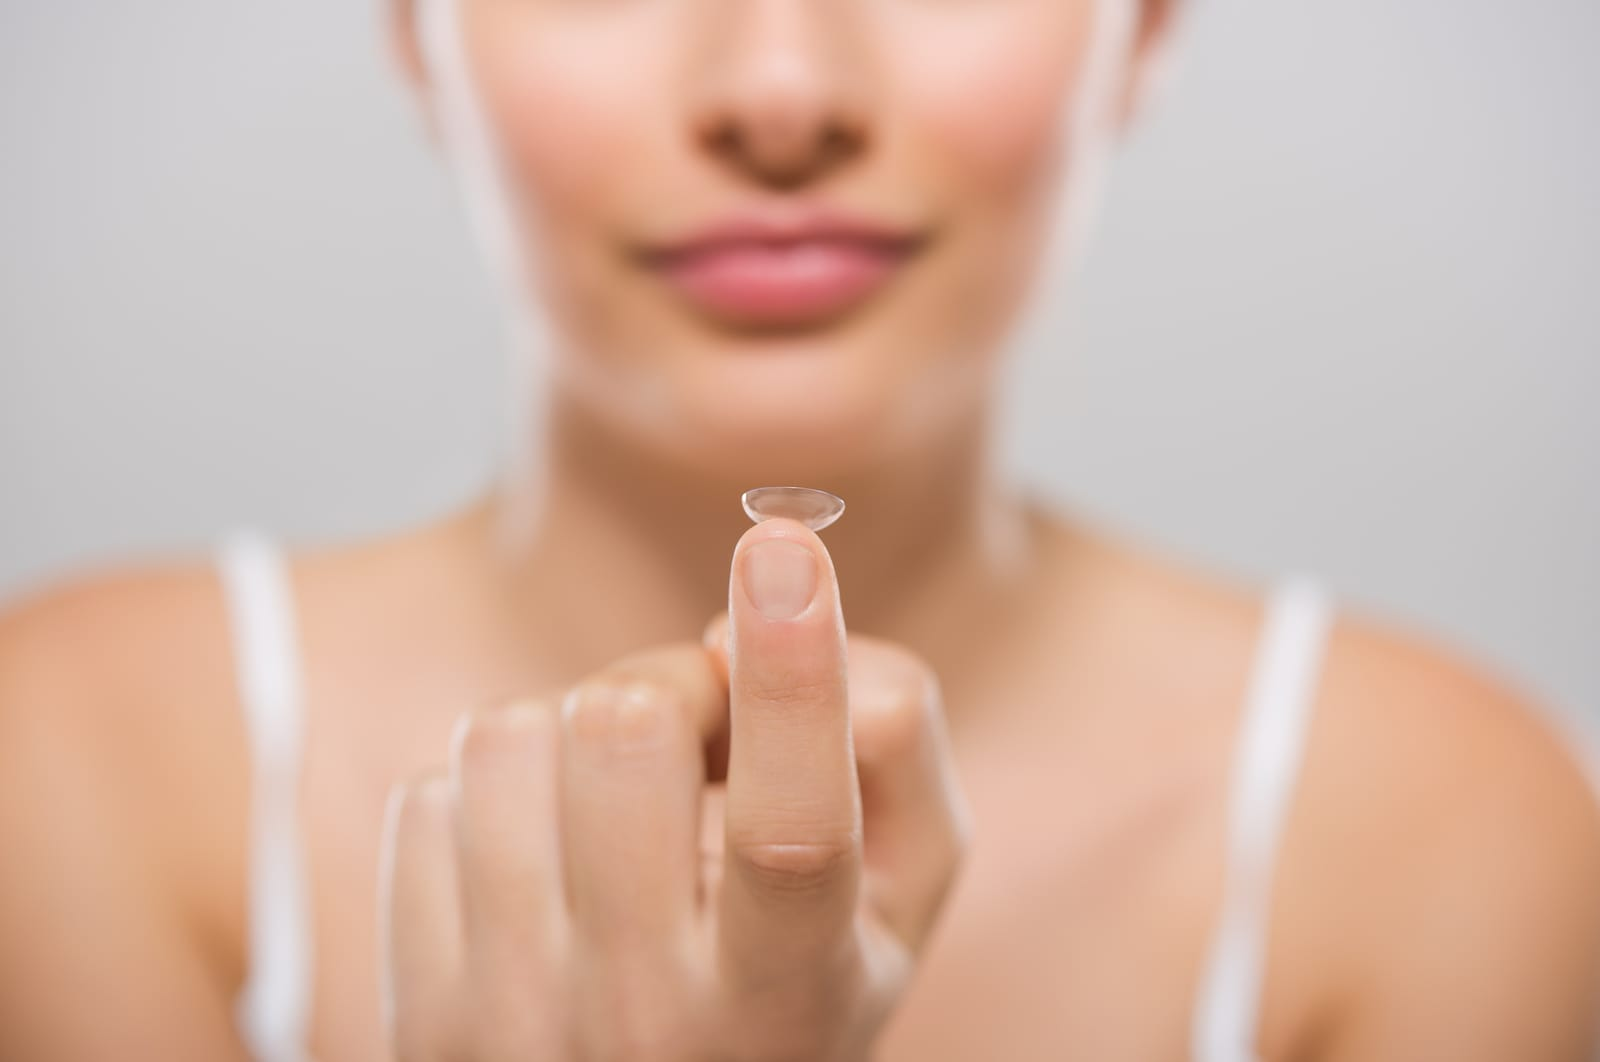 Common Problems with Contact Lenses